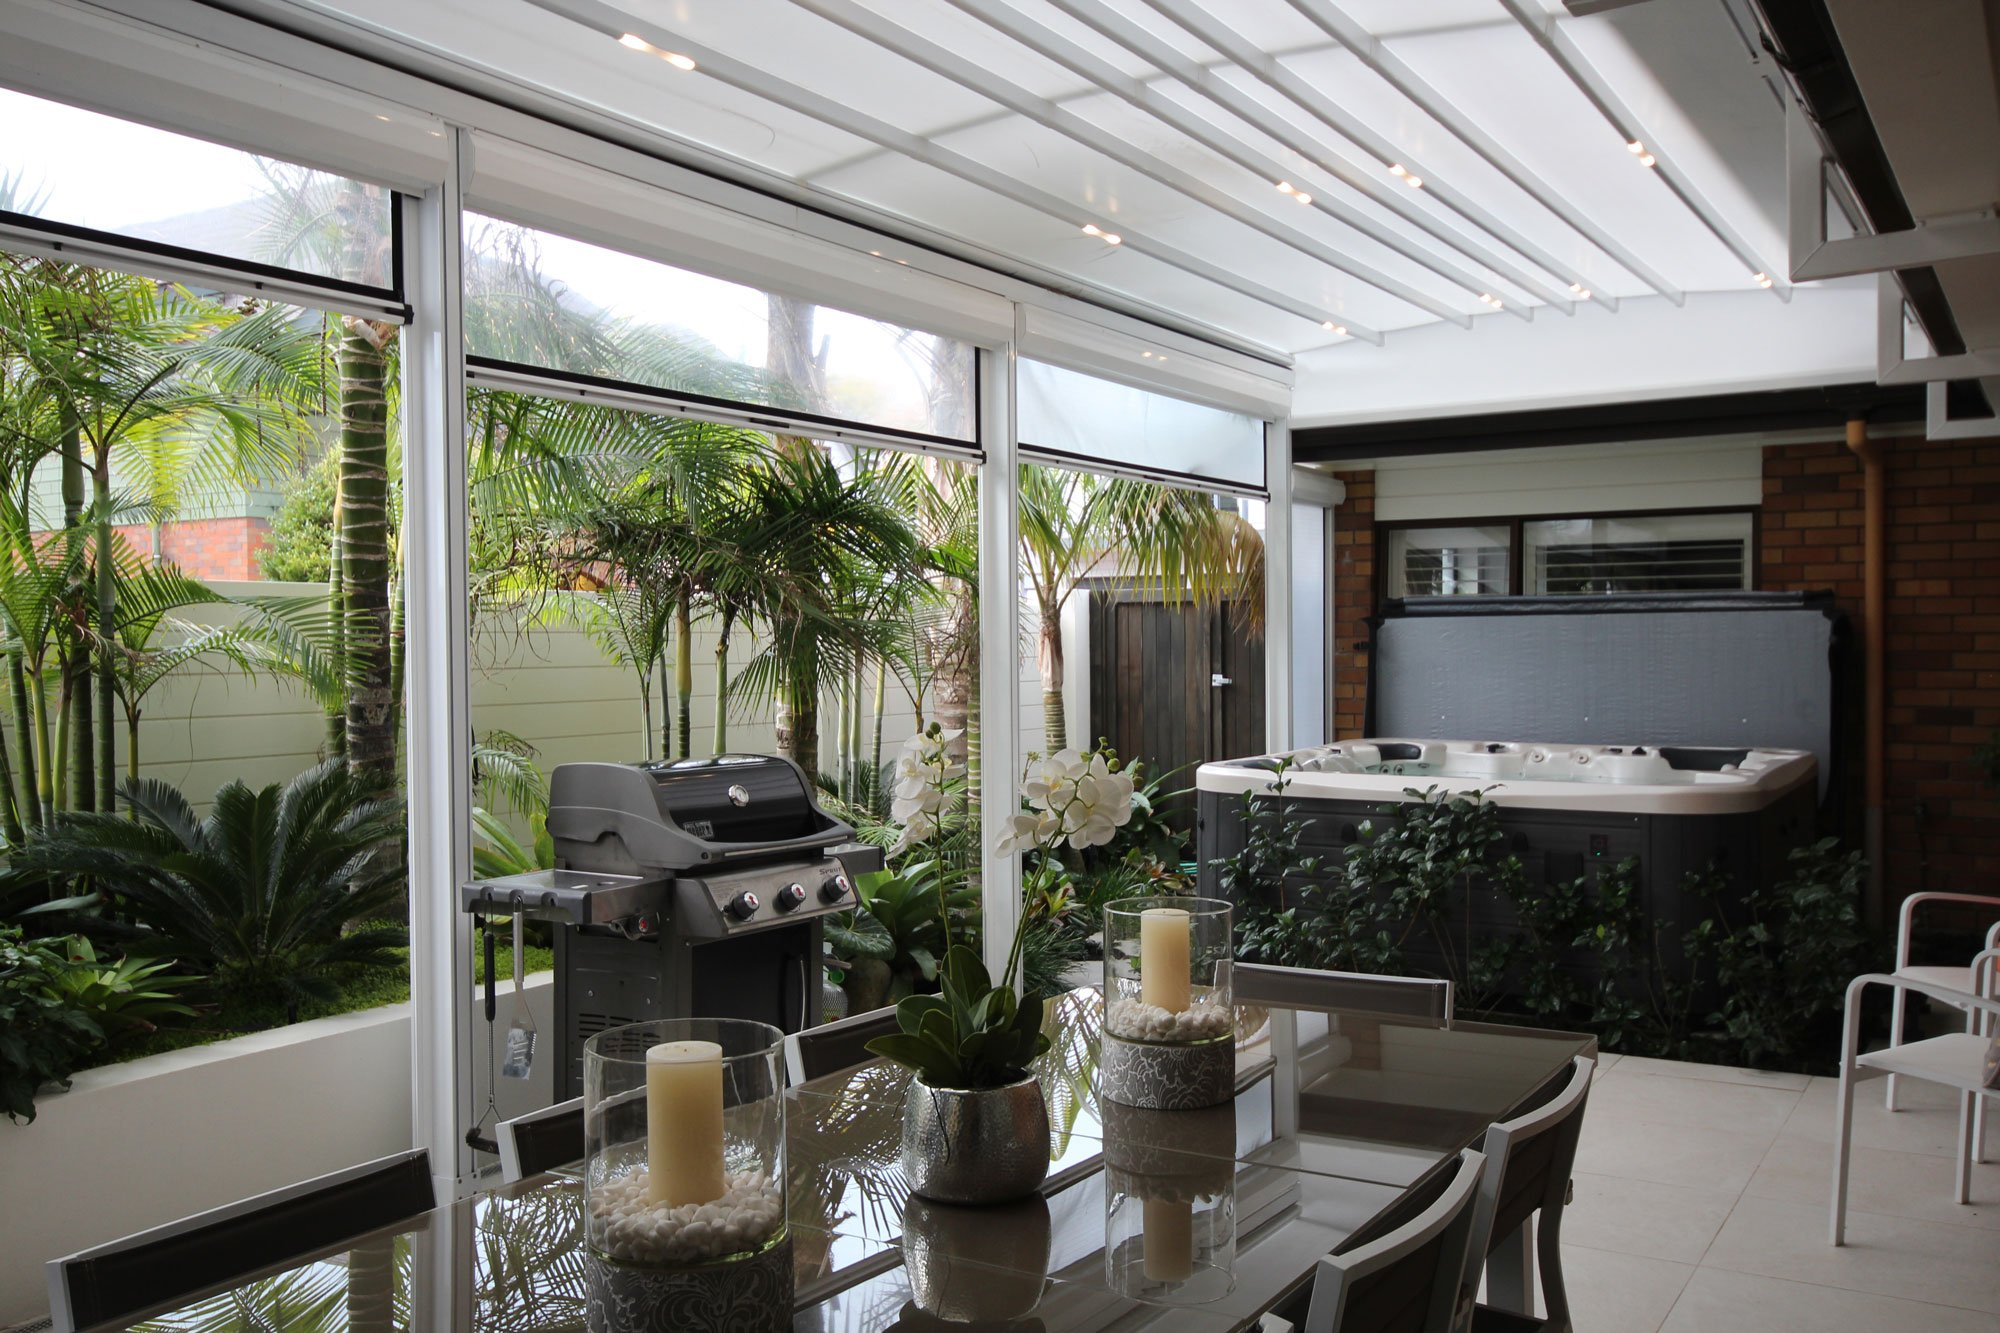 Canopy Awning vs. Pergola: Which is Right For My Home?